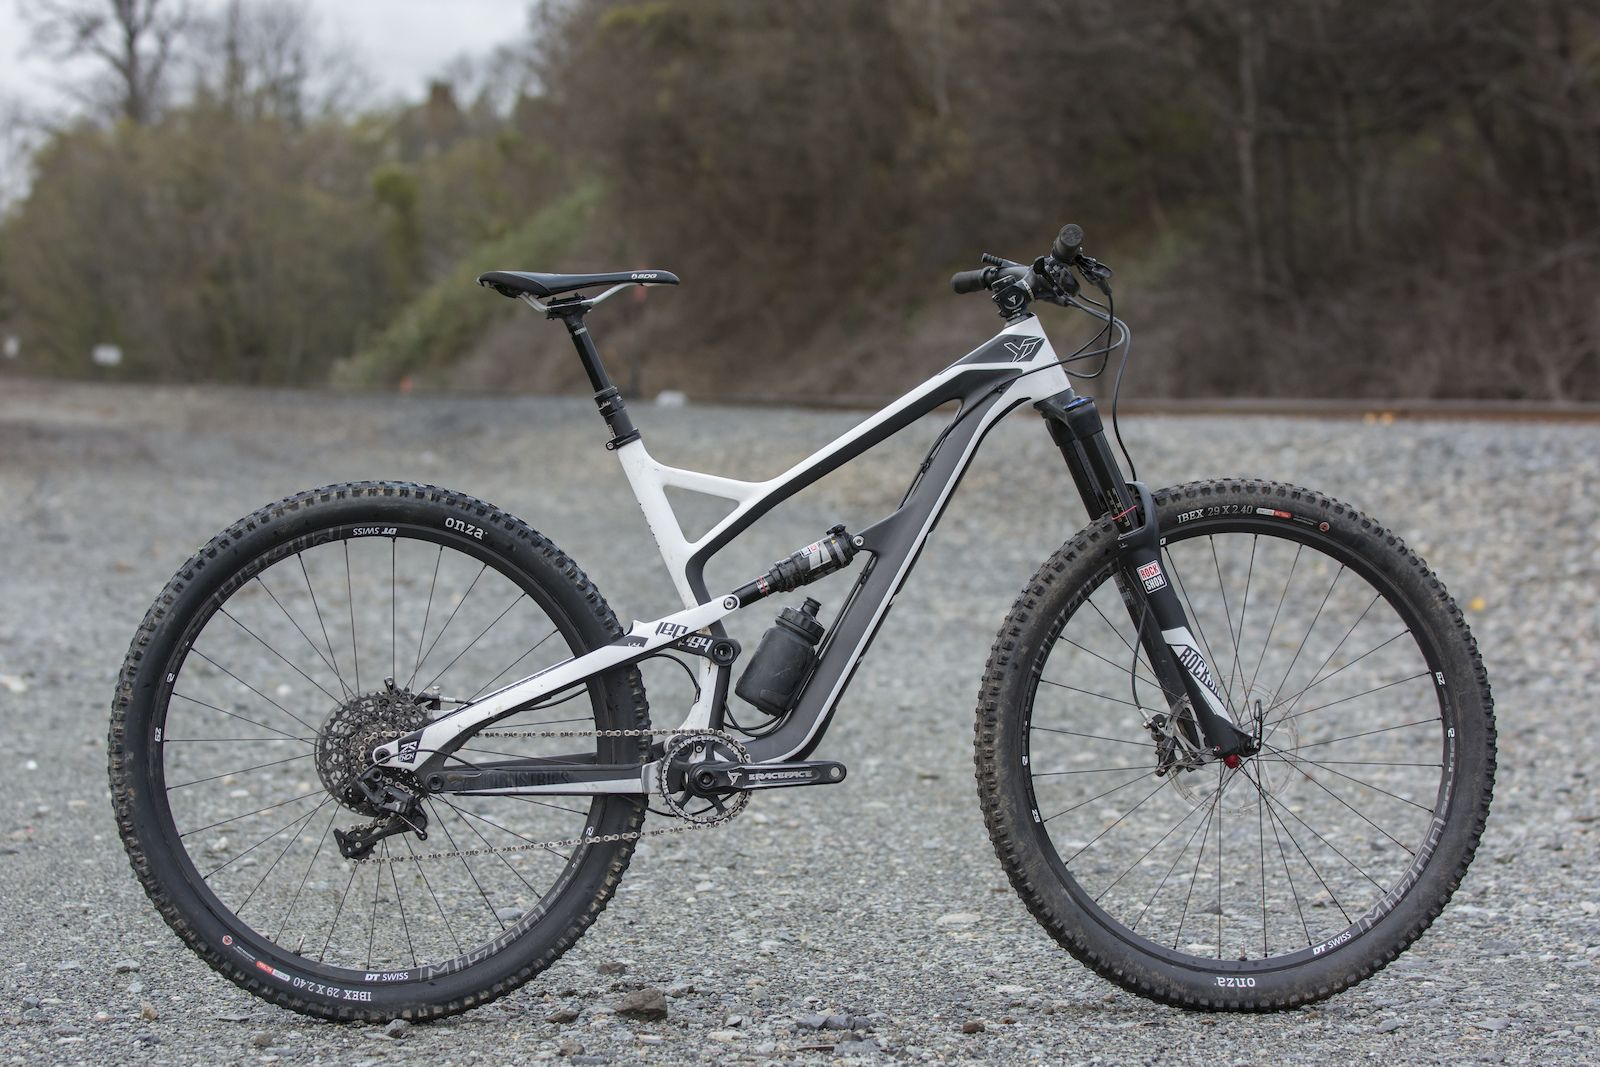 Yt Jeffsy Cf Comp 1 Review Bike Reviews Bike Buy Bike